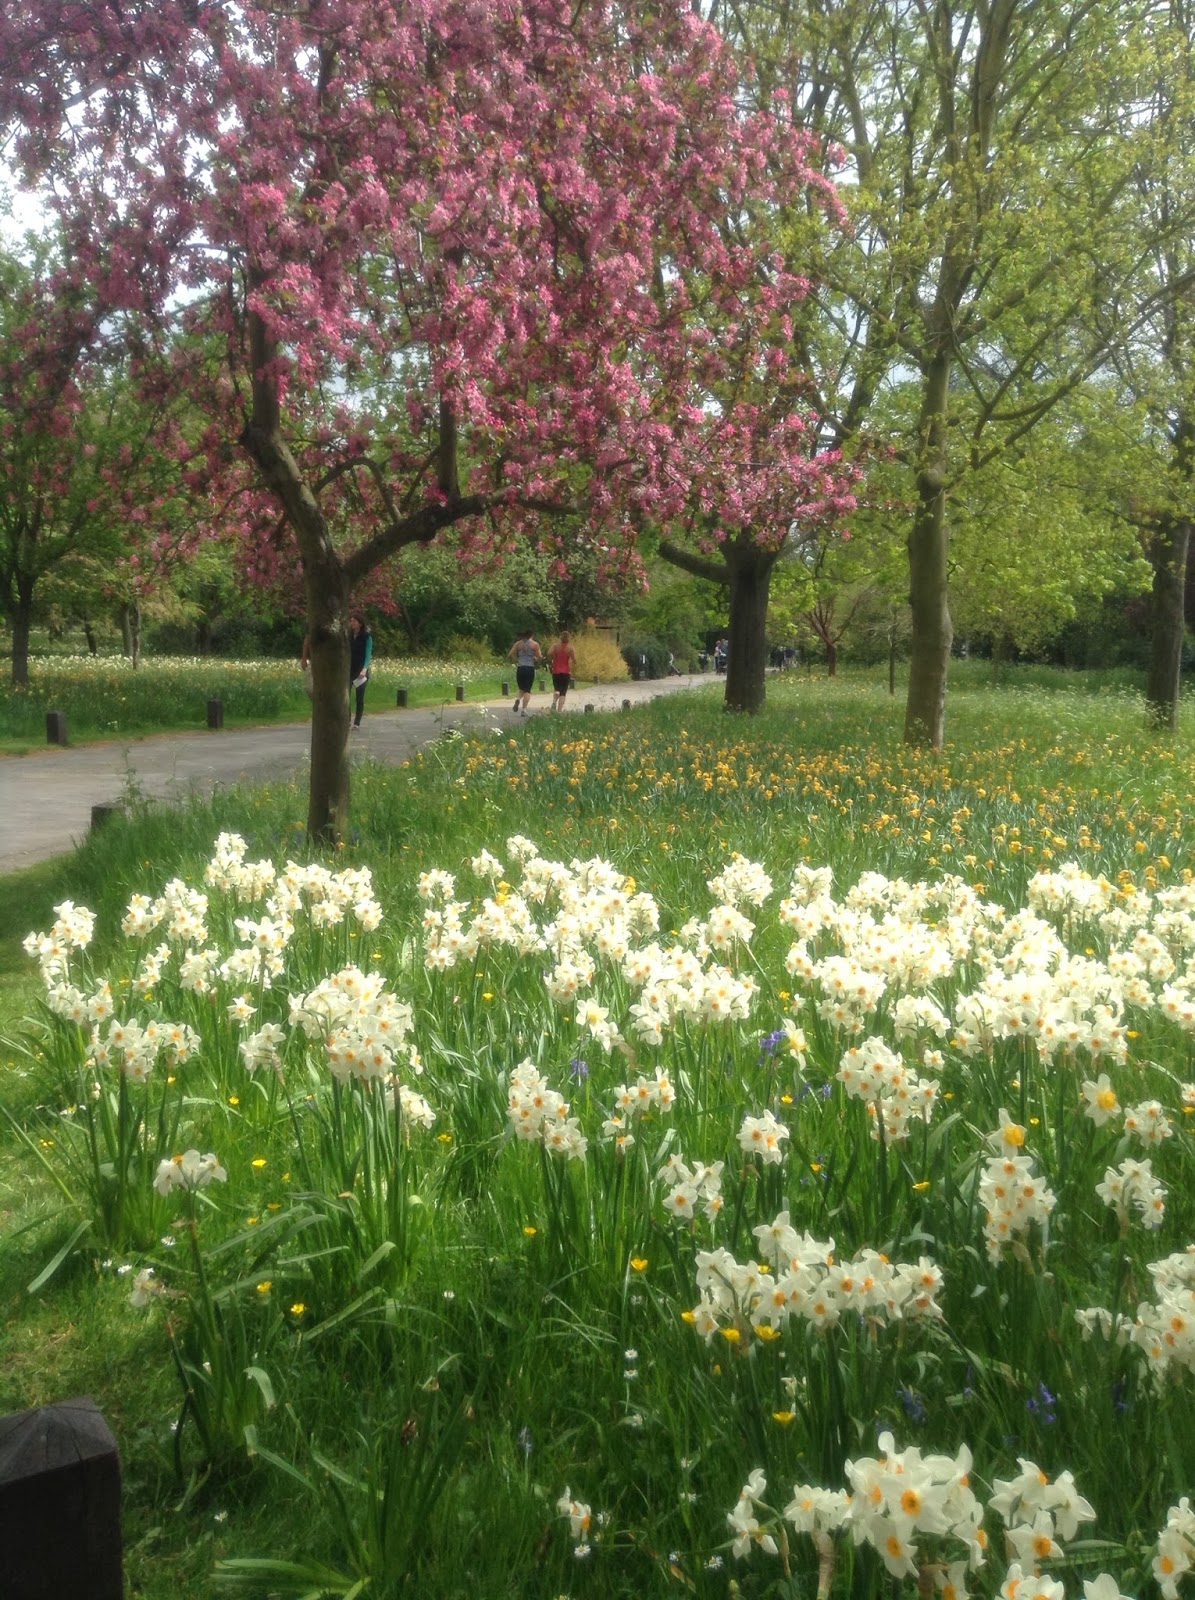 Early Spring Blossoms in the Wilderness, Hampton Court Gardens, Photo by Mercurelli's Garden Design